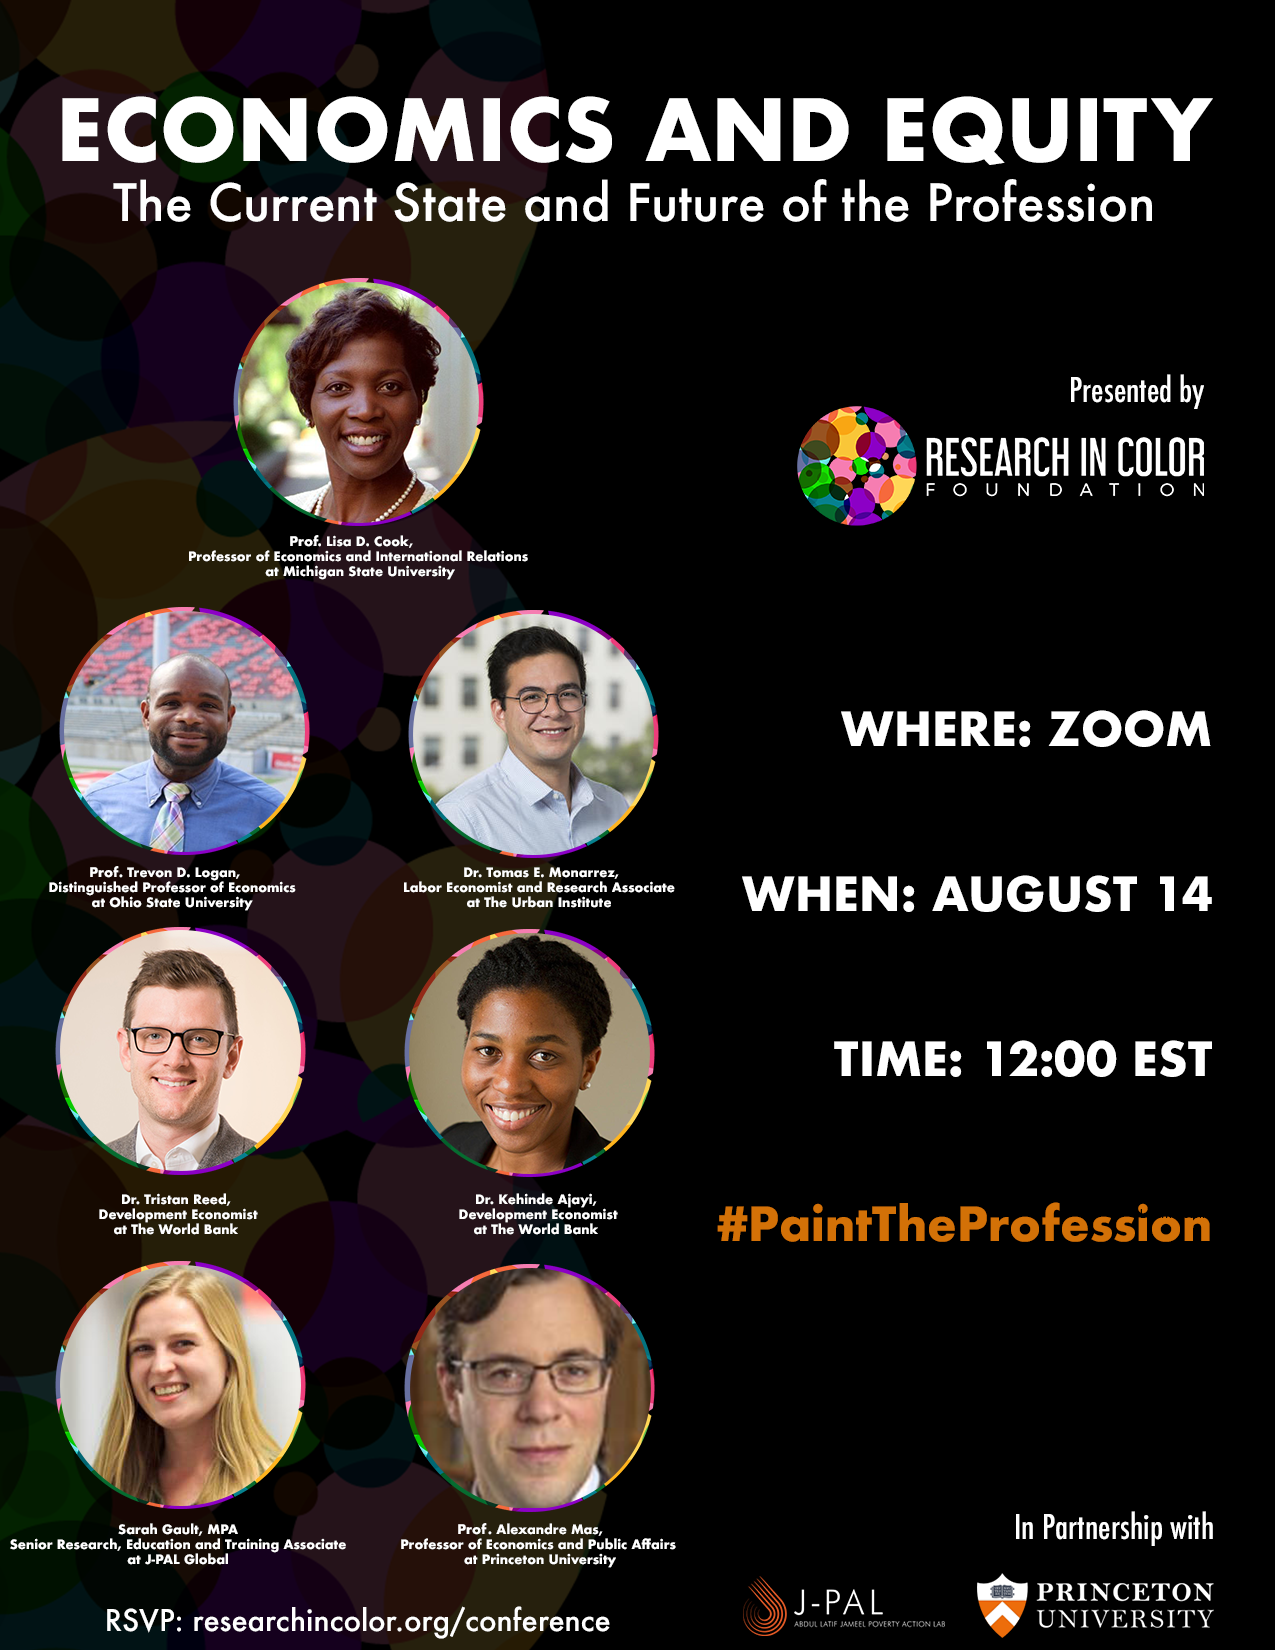 Conference flyer: Economics and Equity: the current state and future of the profession: August 14, 2020 at 12pm EST via Zoom. Includes photos of speakers.